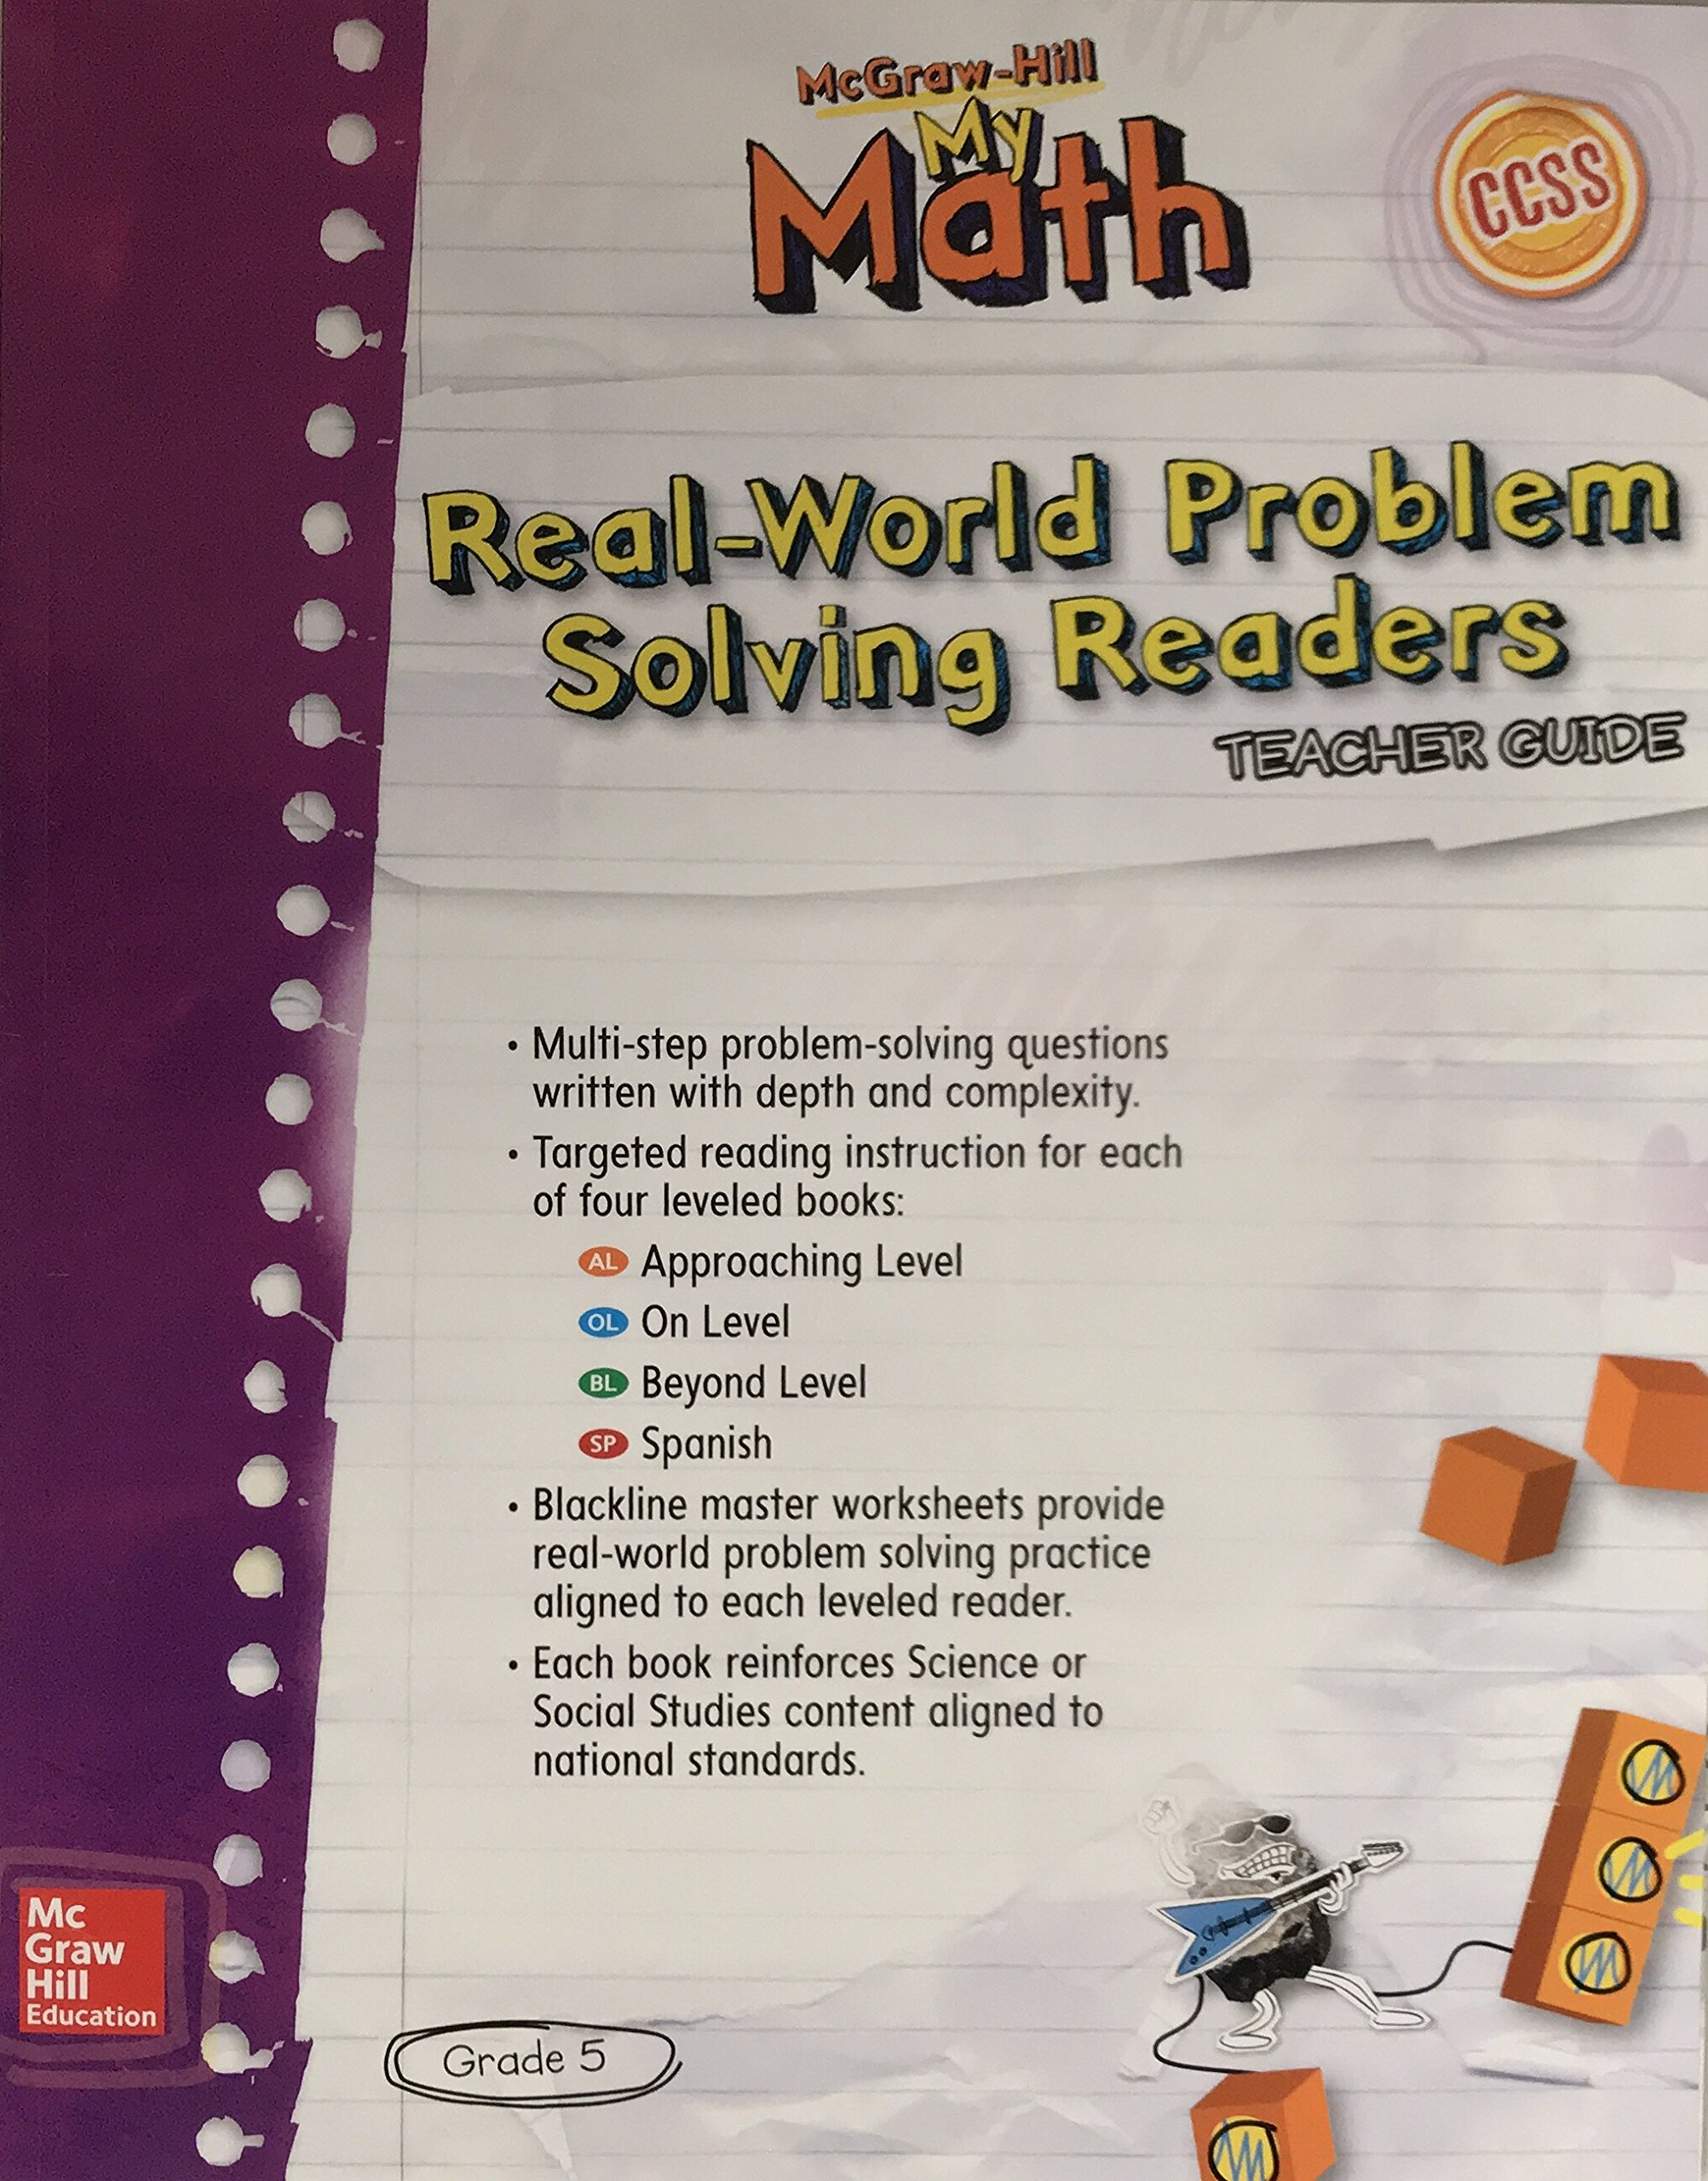 Real-World Problem Solving Readers Teachers Guide (My Math